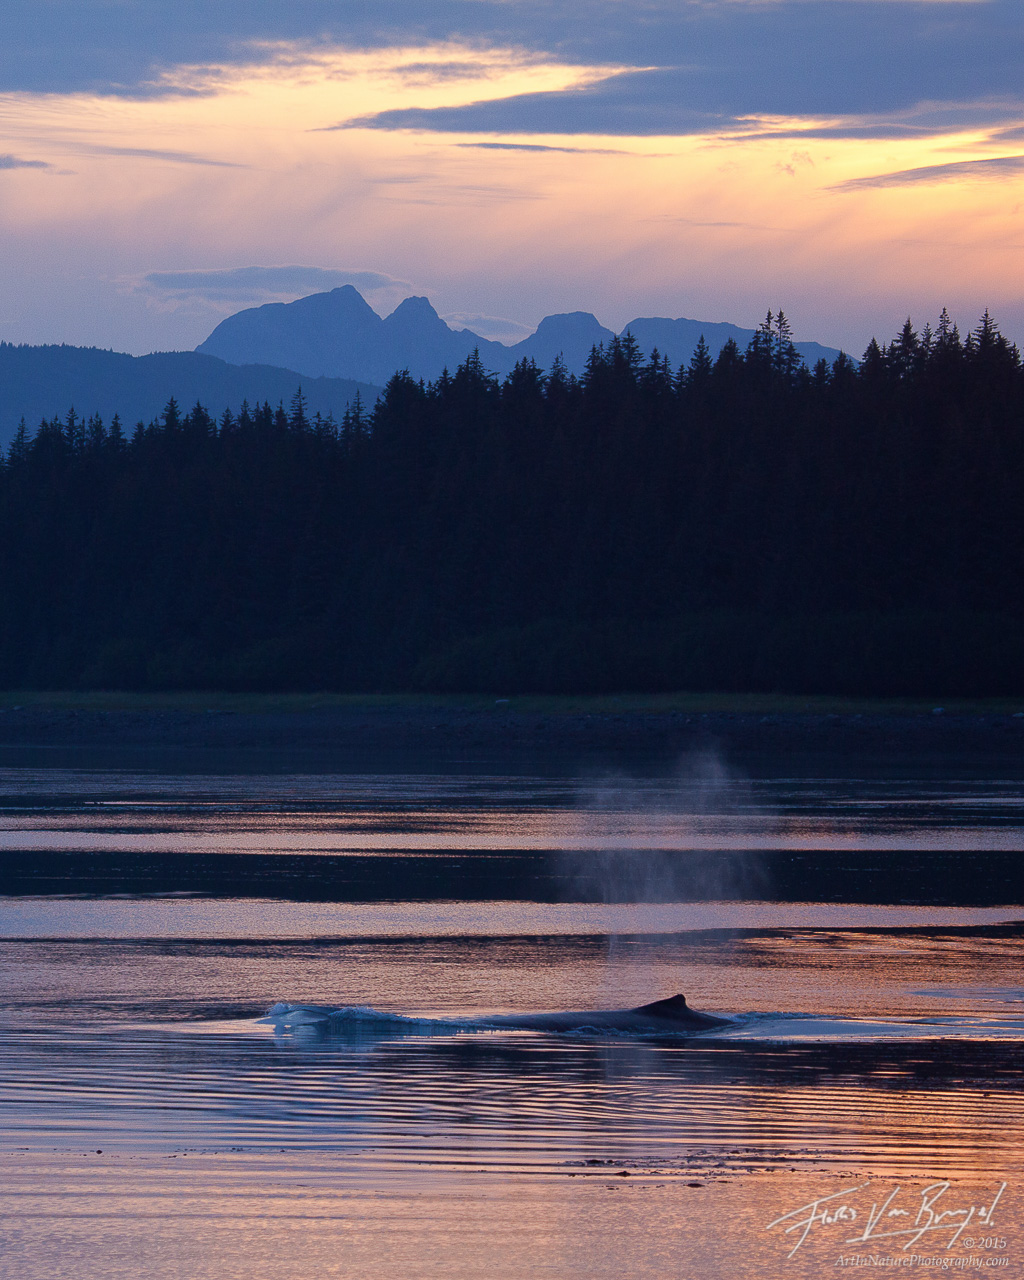 Humpback Whale Breathing at Sunset, Beardslee Islands, Alaska, photo